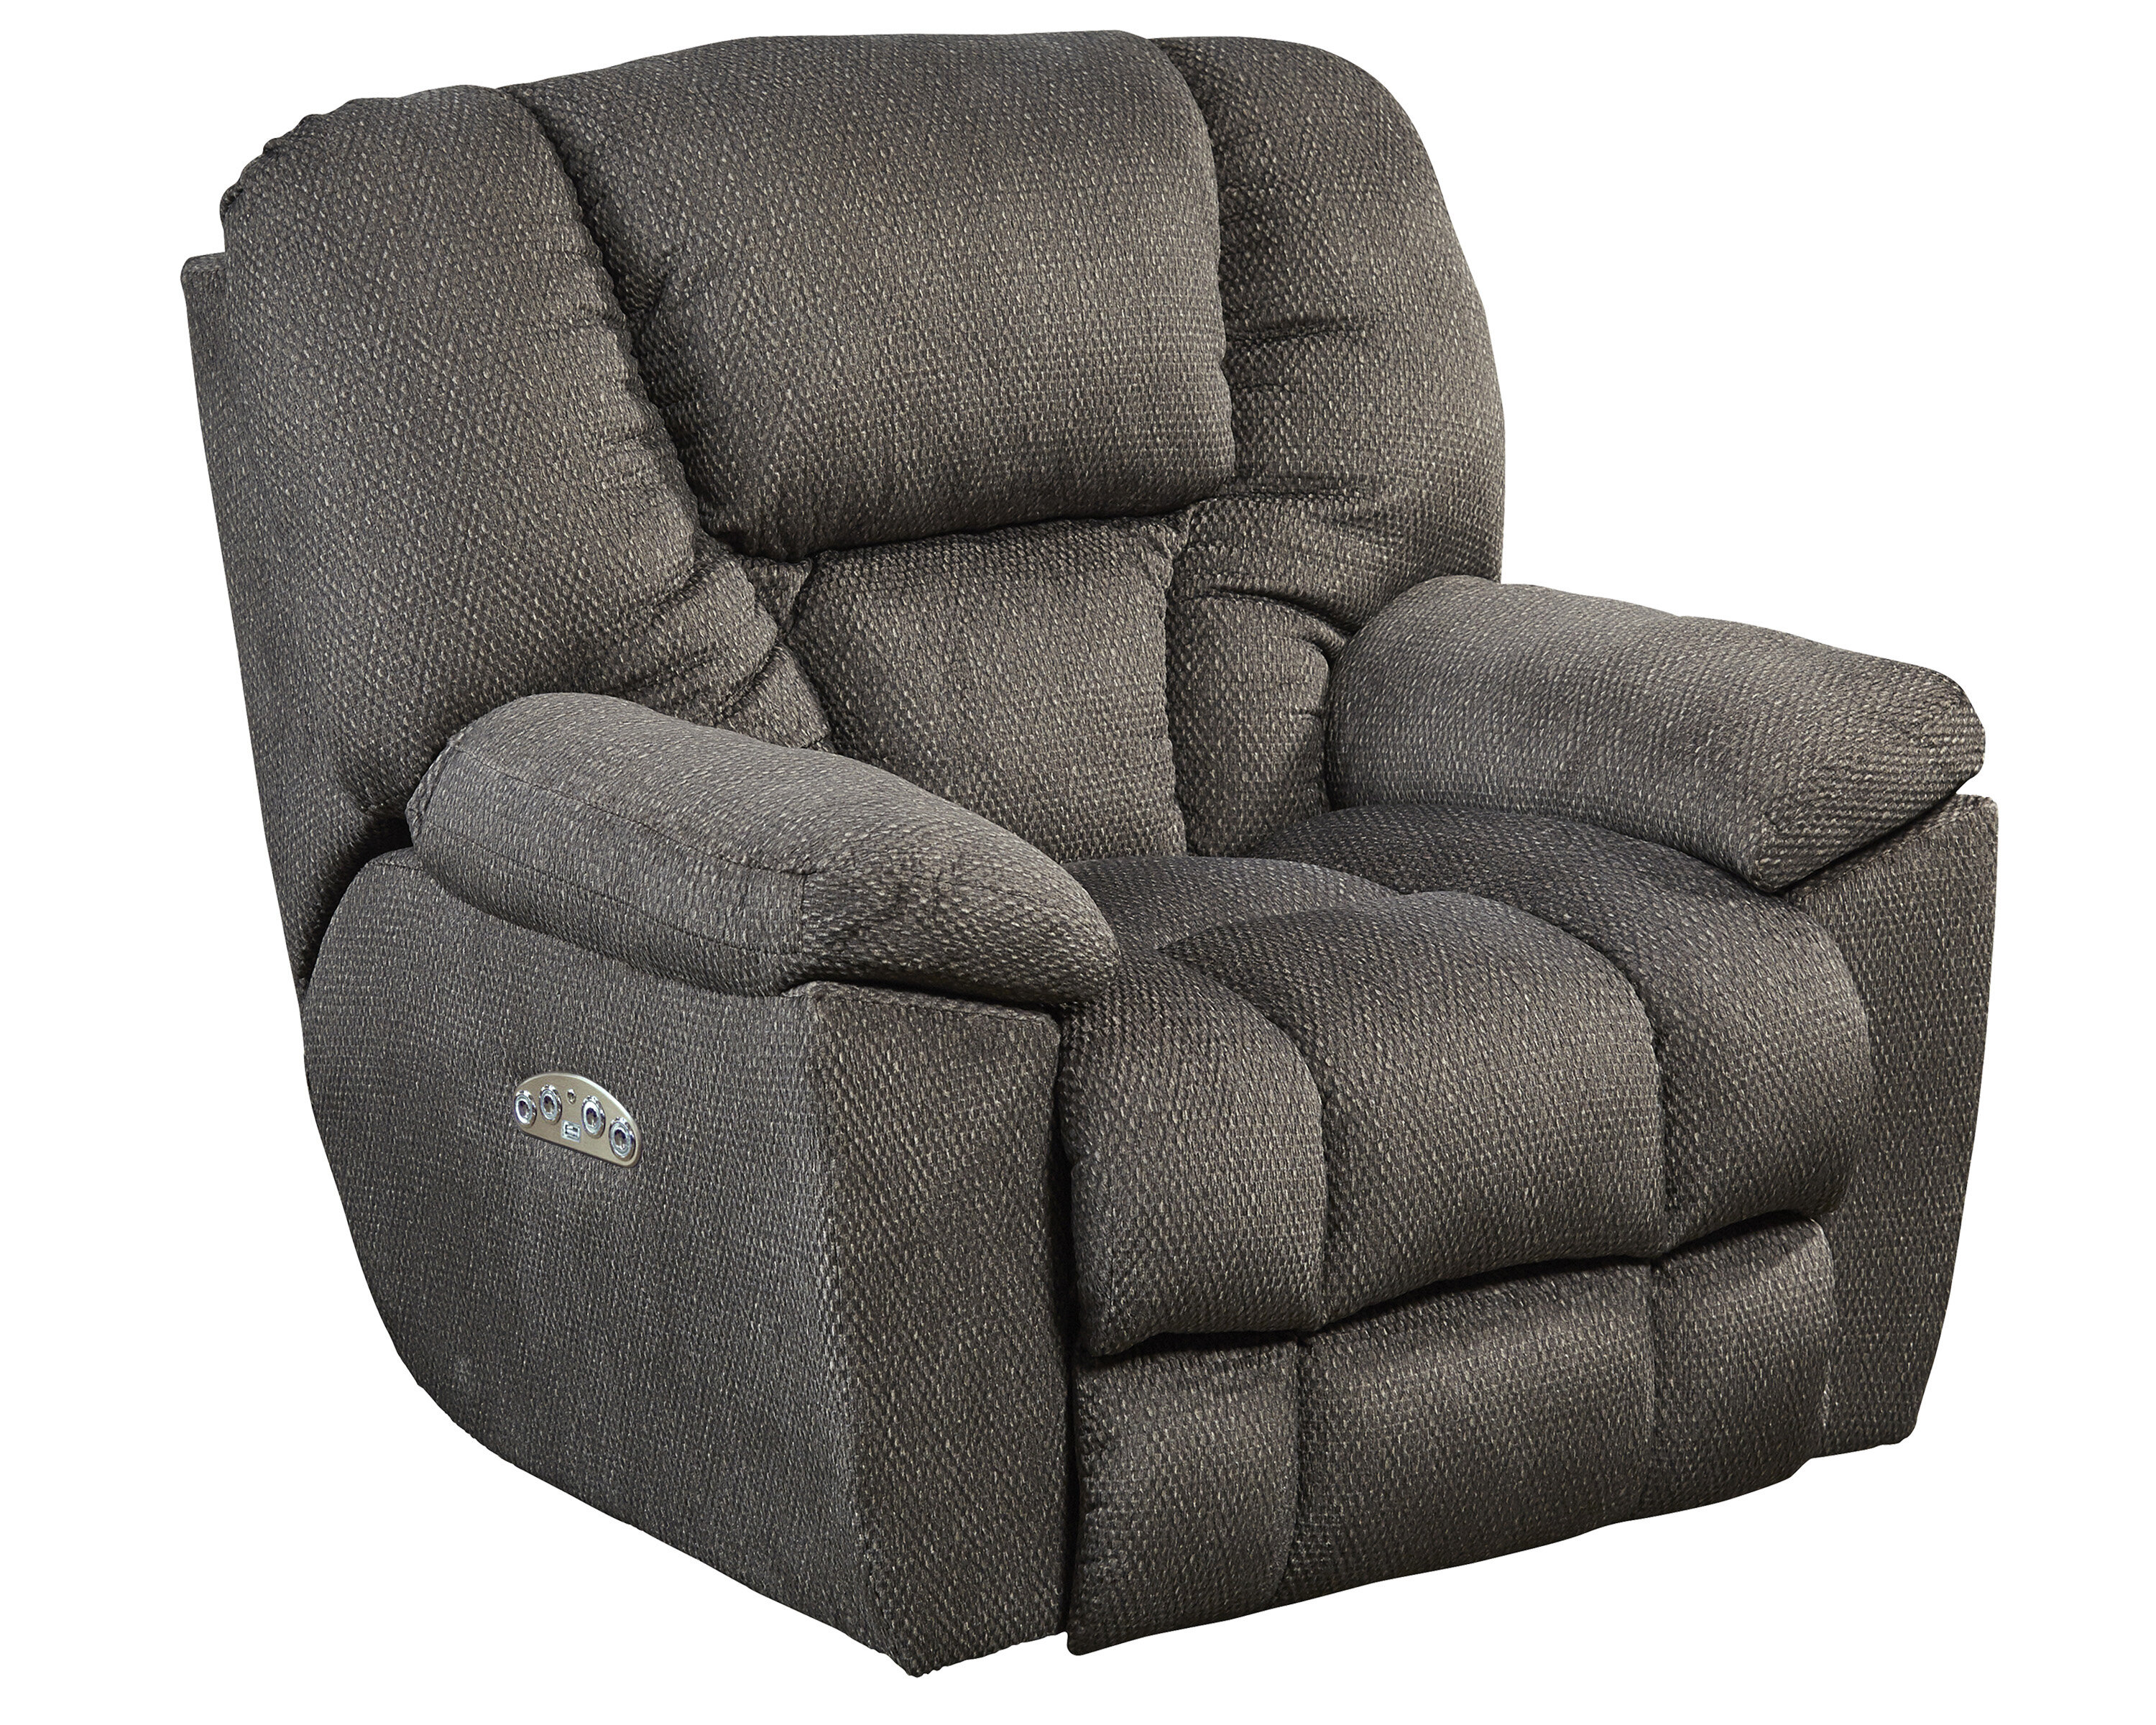 up//down Catnapper Logo 2 button Lift Chair or Power Recliner Hand Control